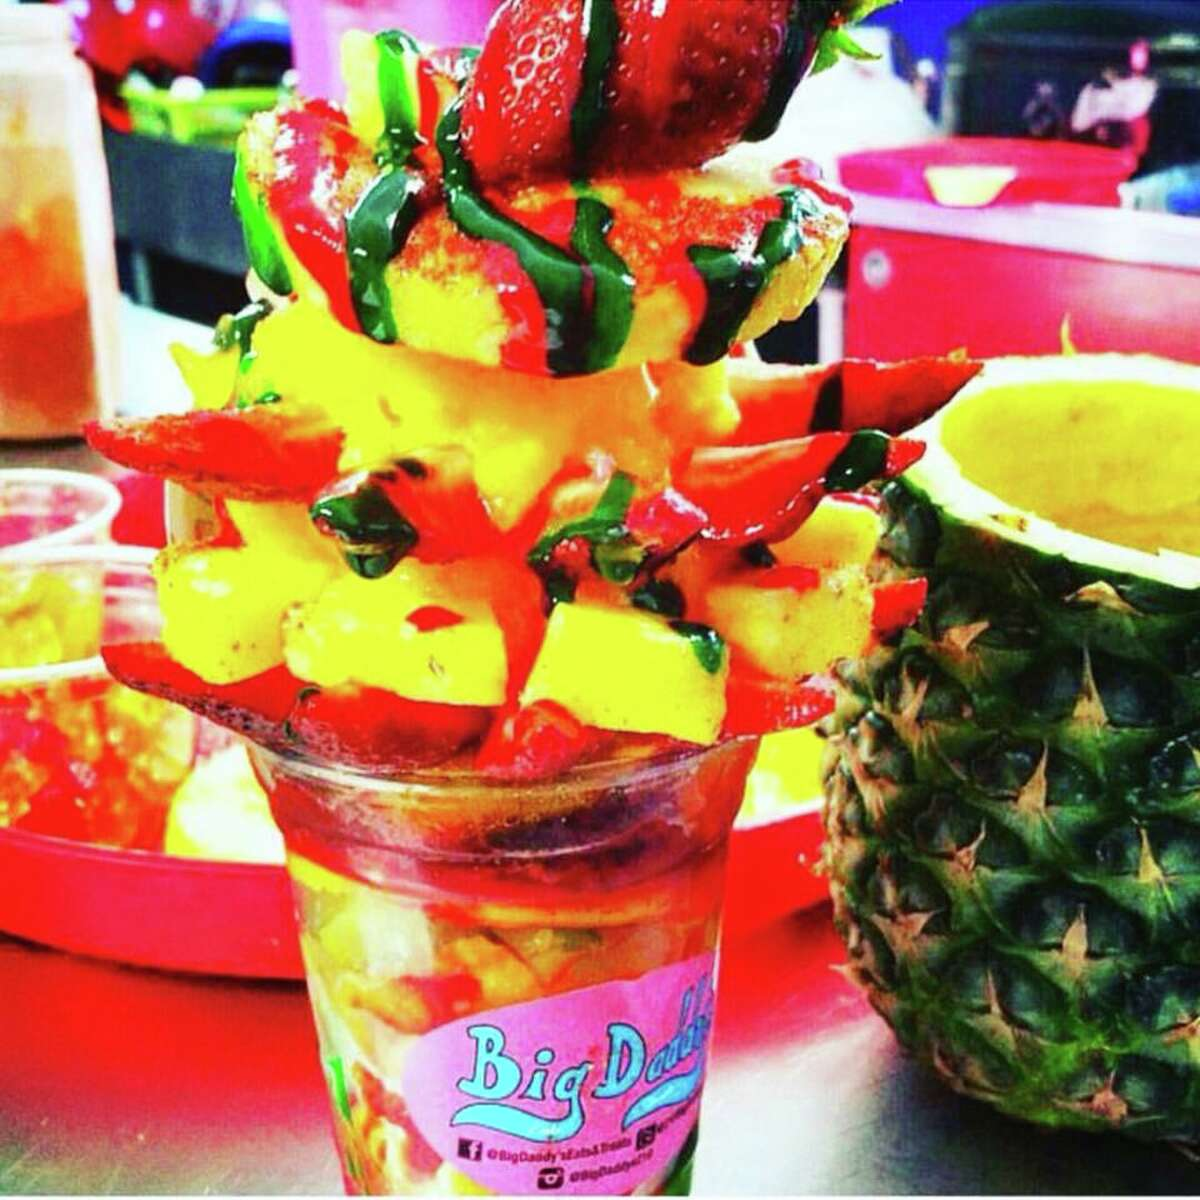 The Mexican artisan ice shop, Big Daddy's Eats & Treats, is opening a Laredo storefront.